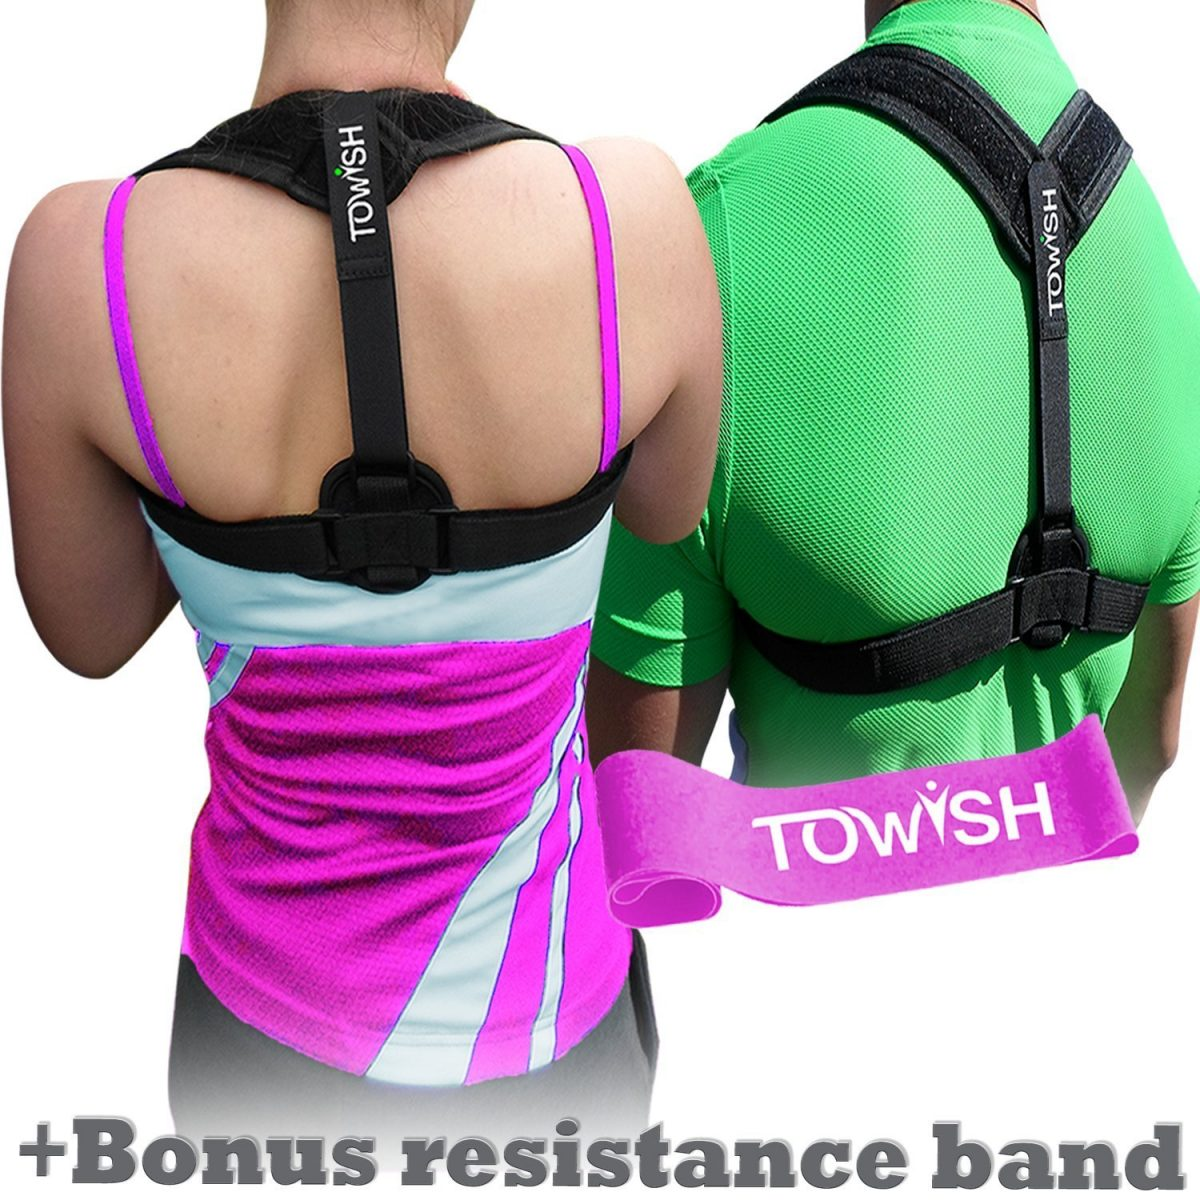 TOWISH Posture Corrector – Your Adjustable Back Support – $13.97